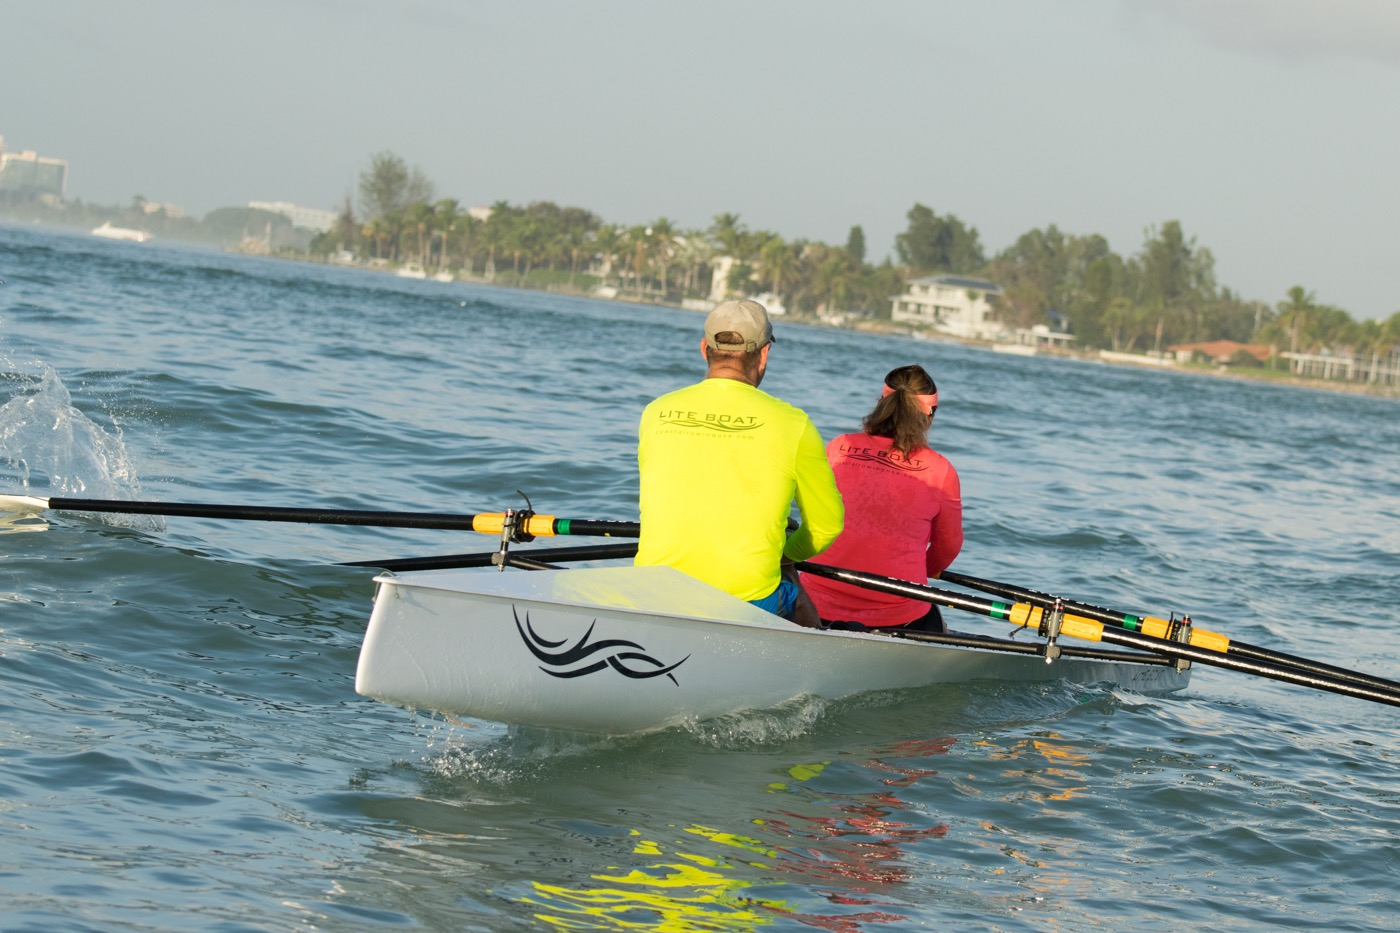 LiteRace 2X - We got the latest edition to our fleet, the LiteRace 2X. Now it's time to really start training for races, but it's still so much fun!!